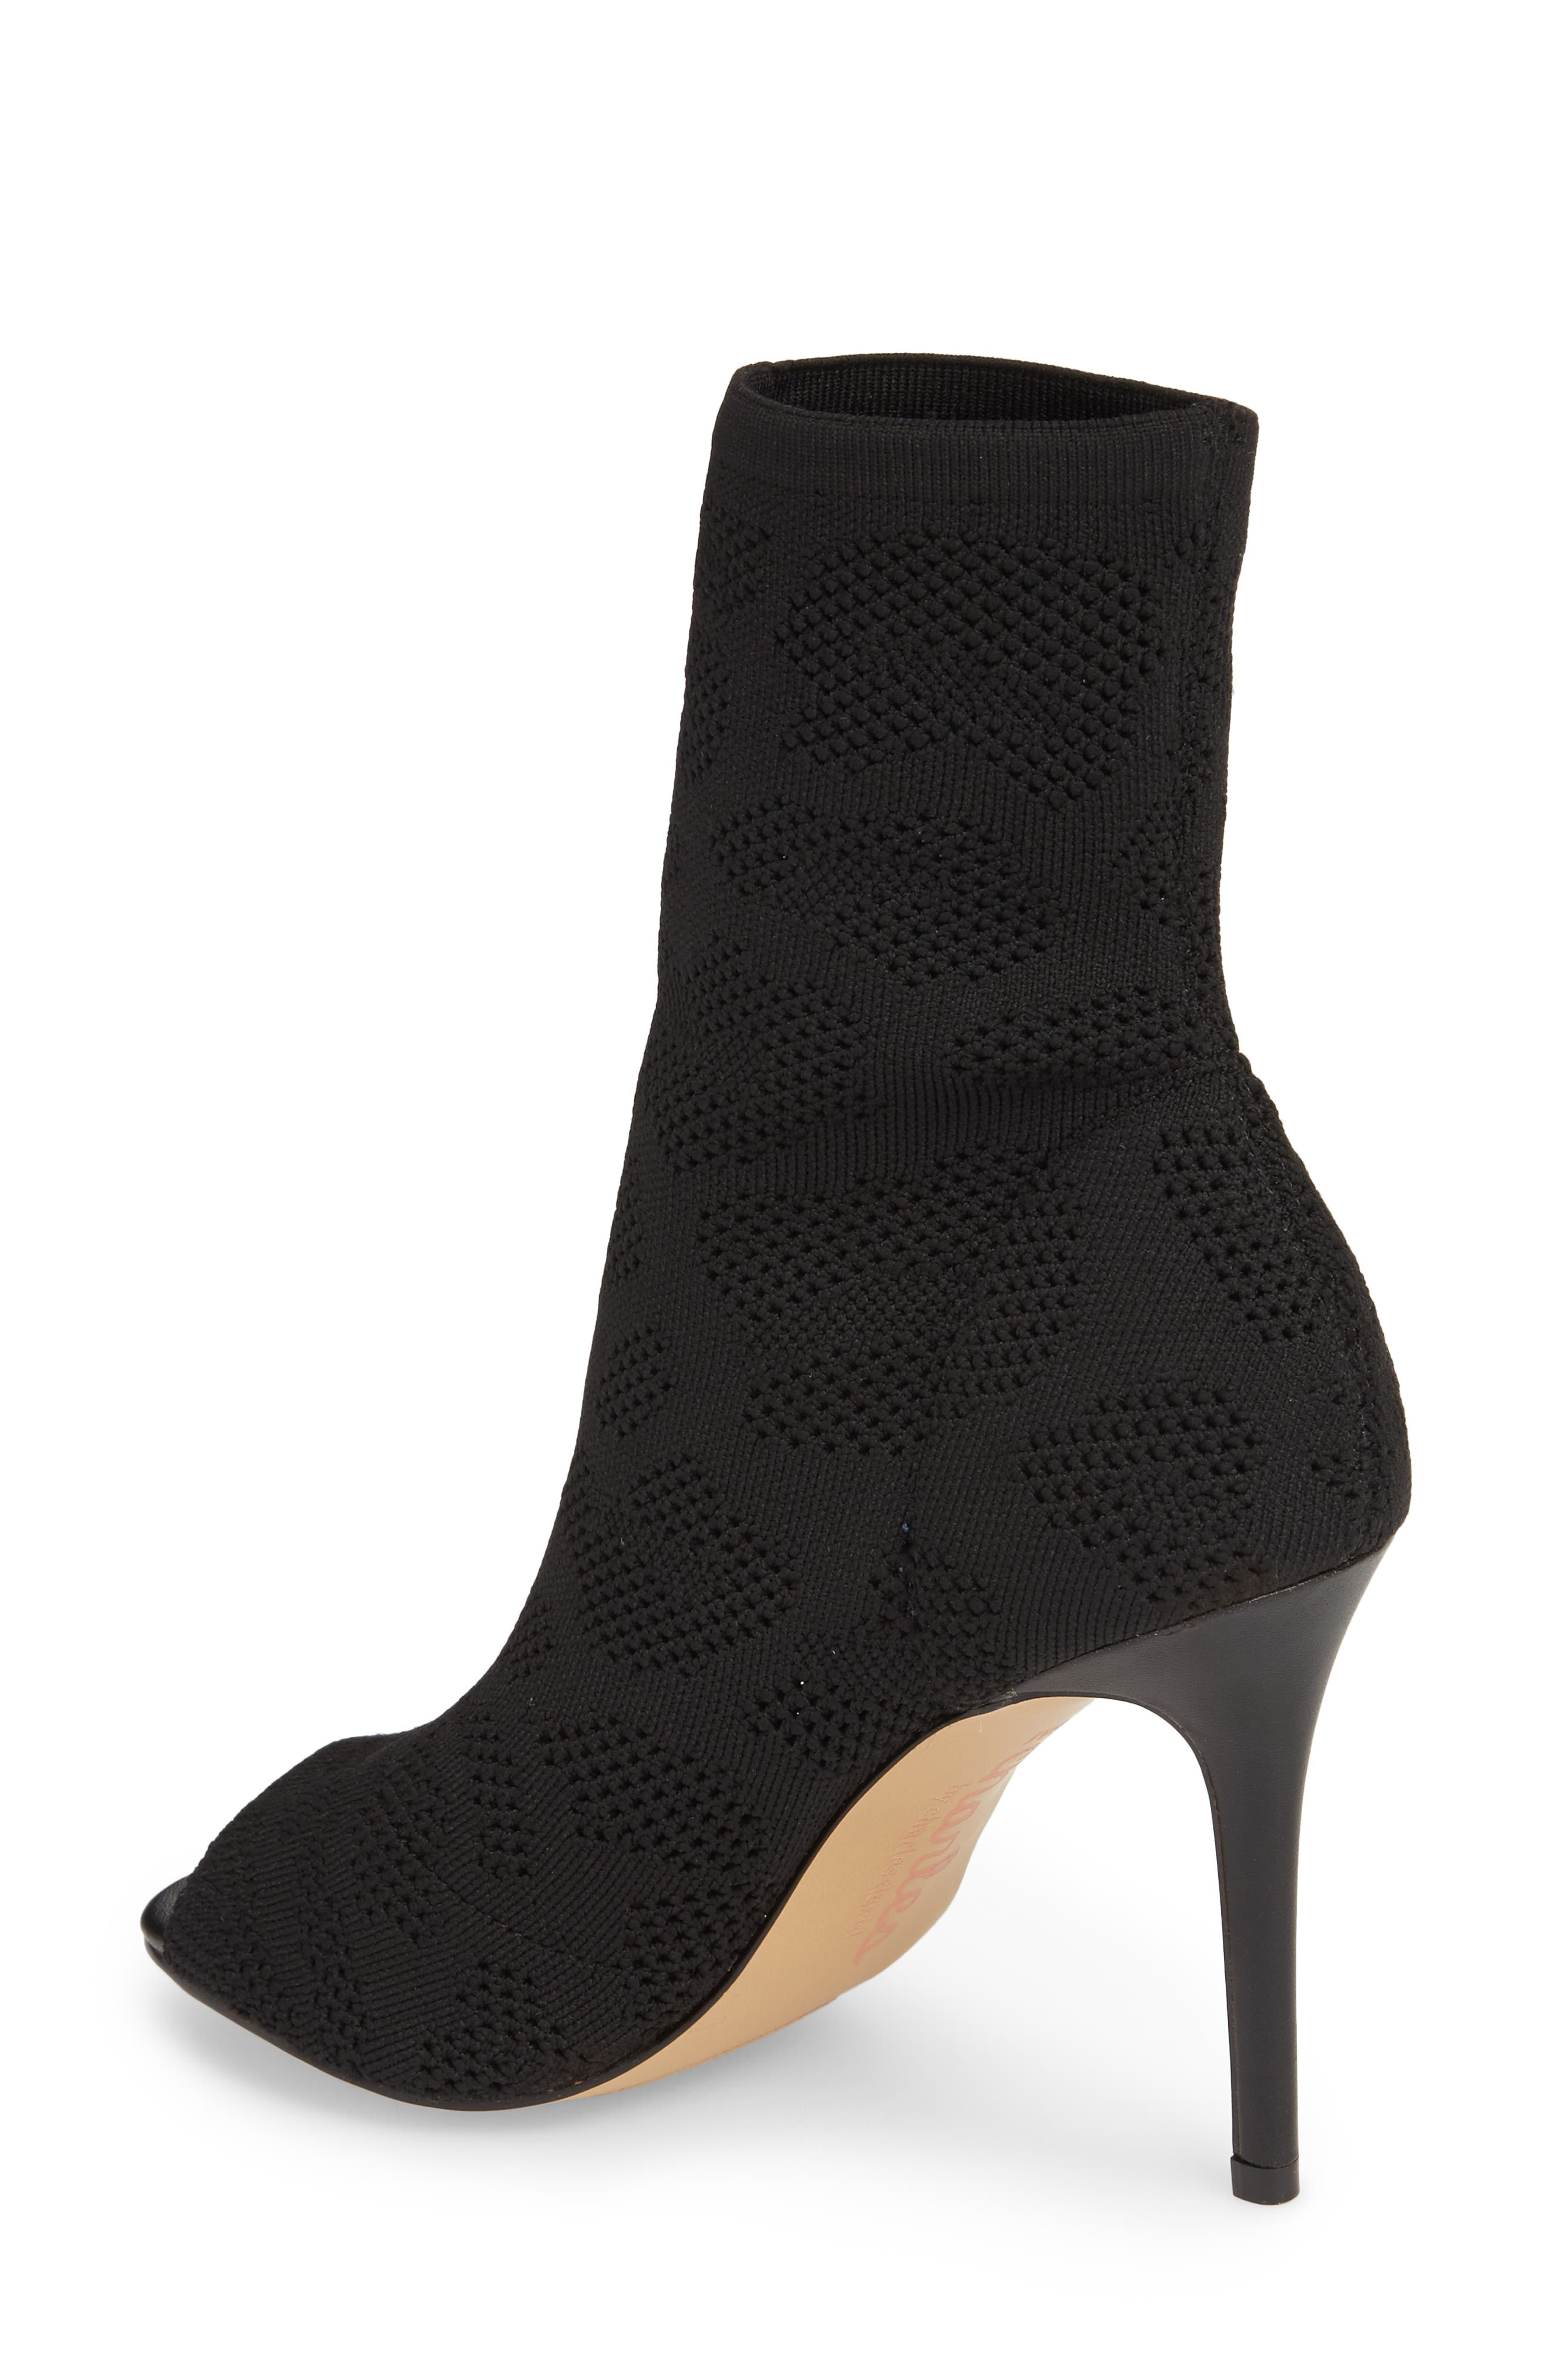 Ranger Sock Knit Open Toe Bootie,                             Alternate thumbnail 2, color,                             Black Stretch Fabric